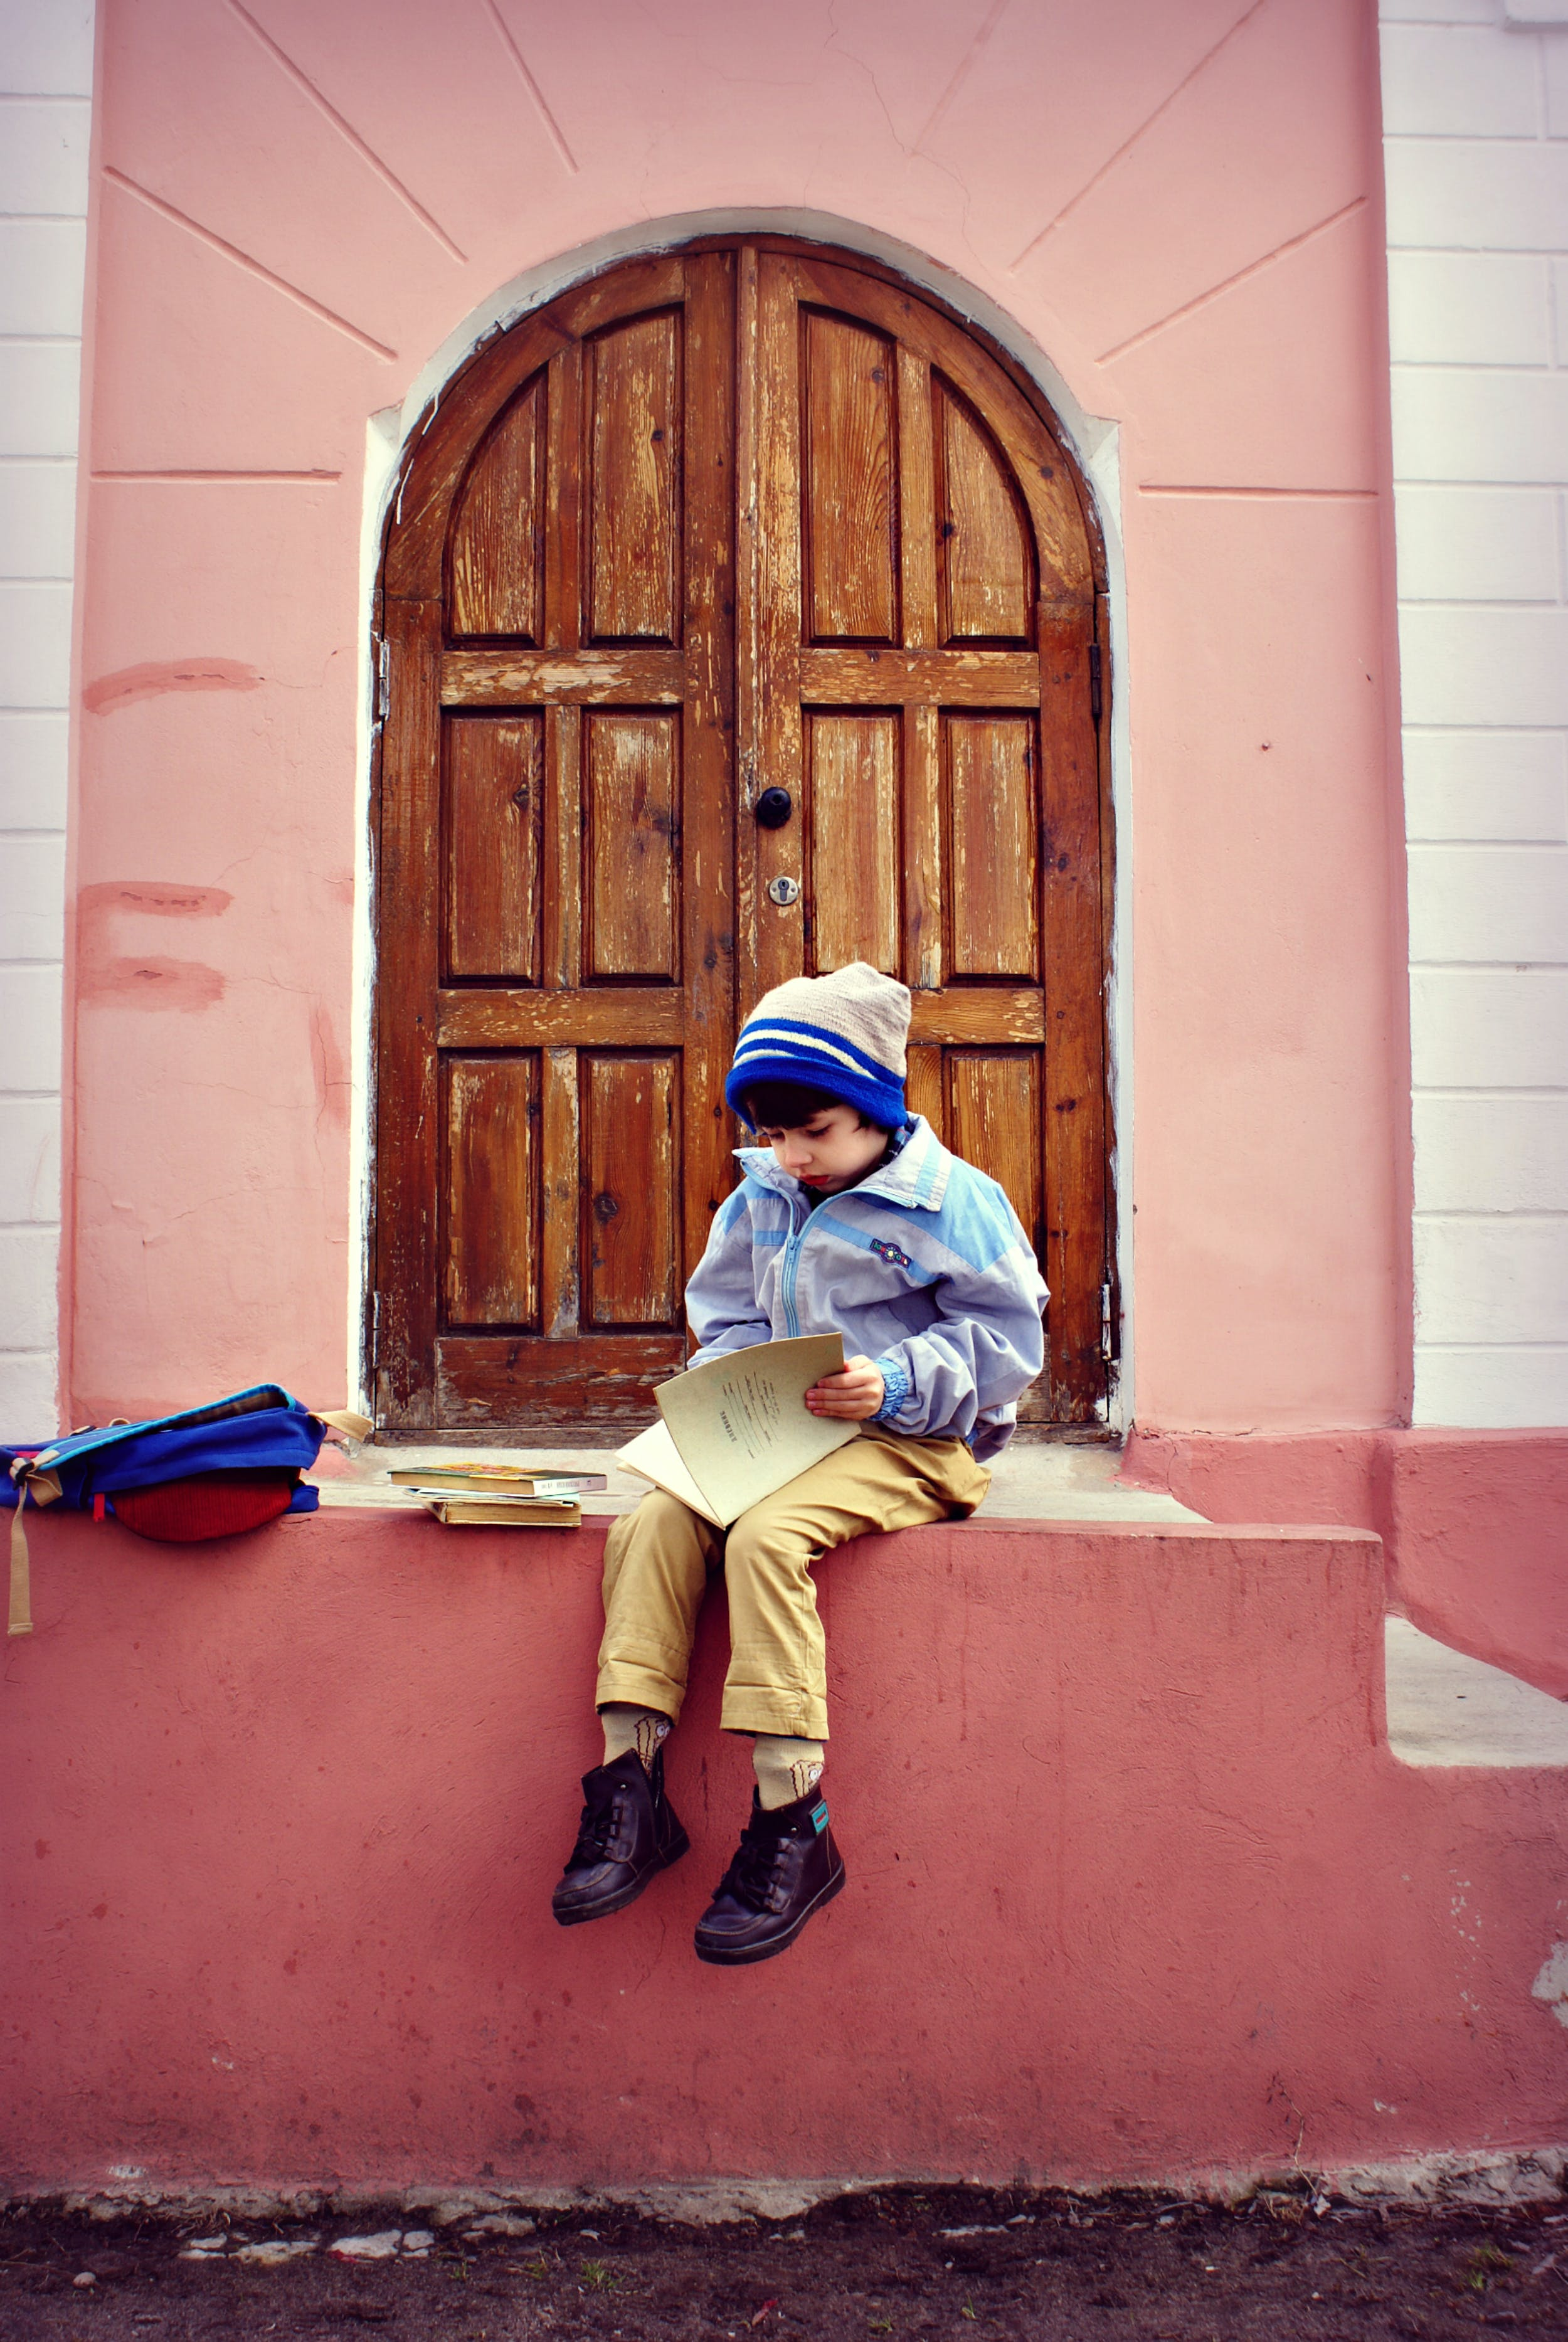 Boy Sitting On Stairs Holding Book